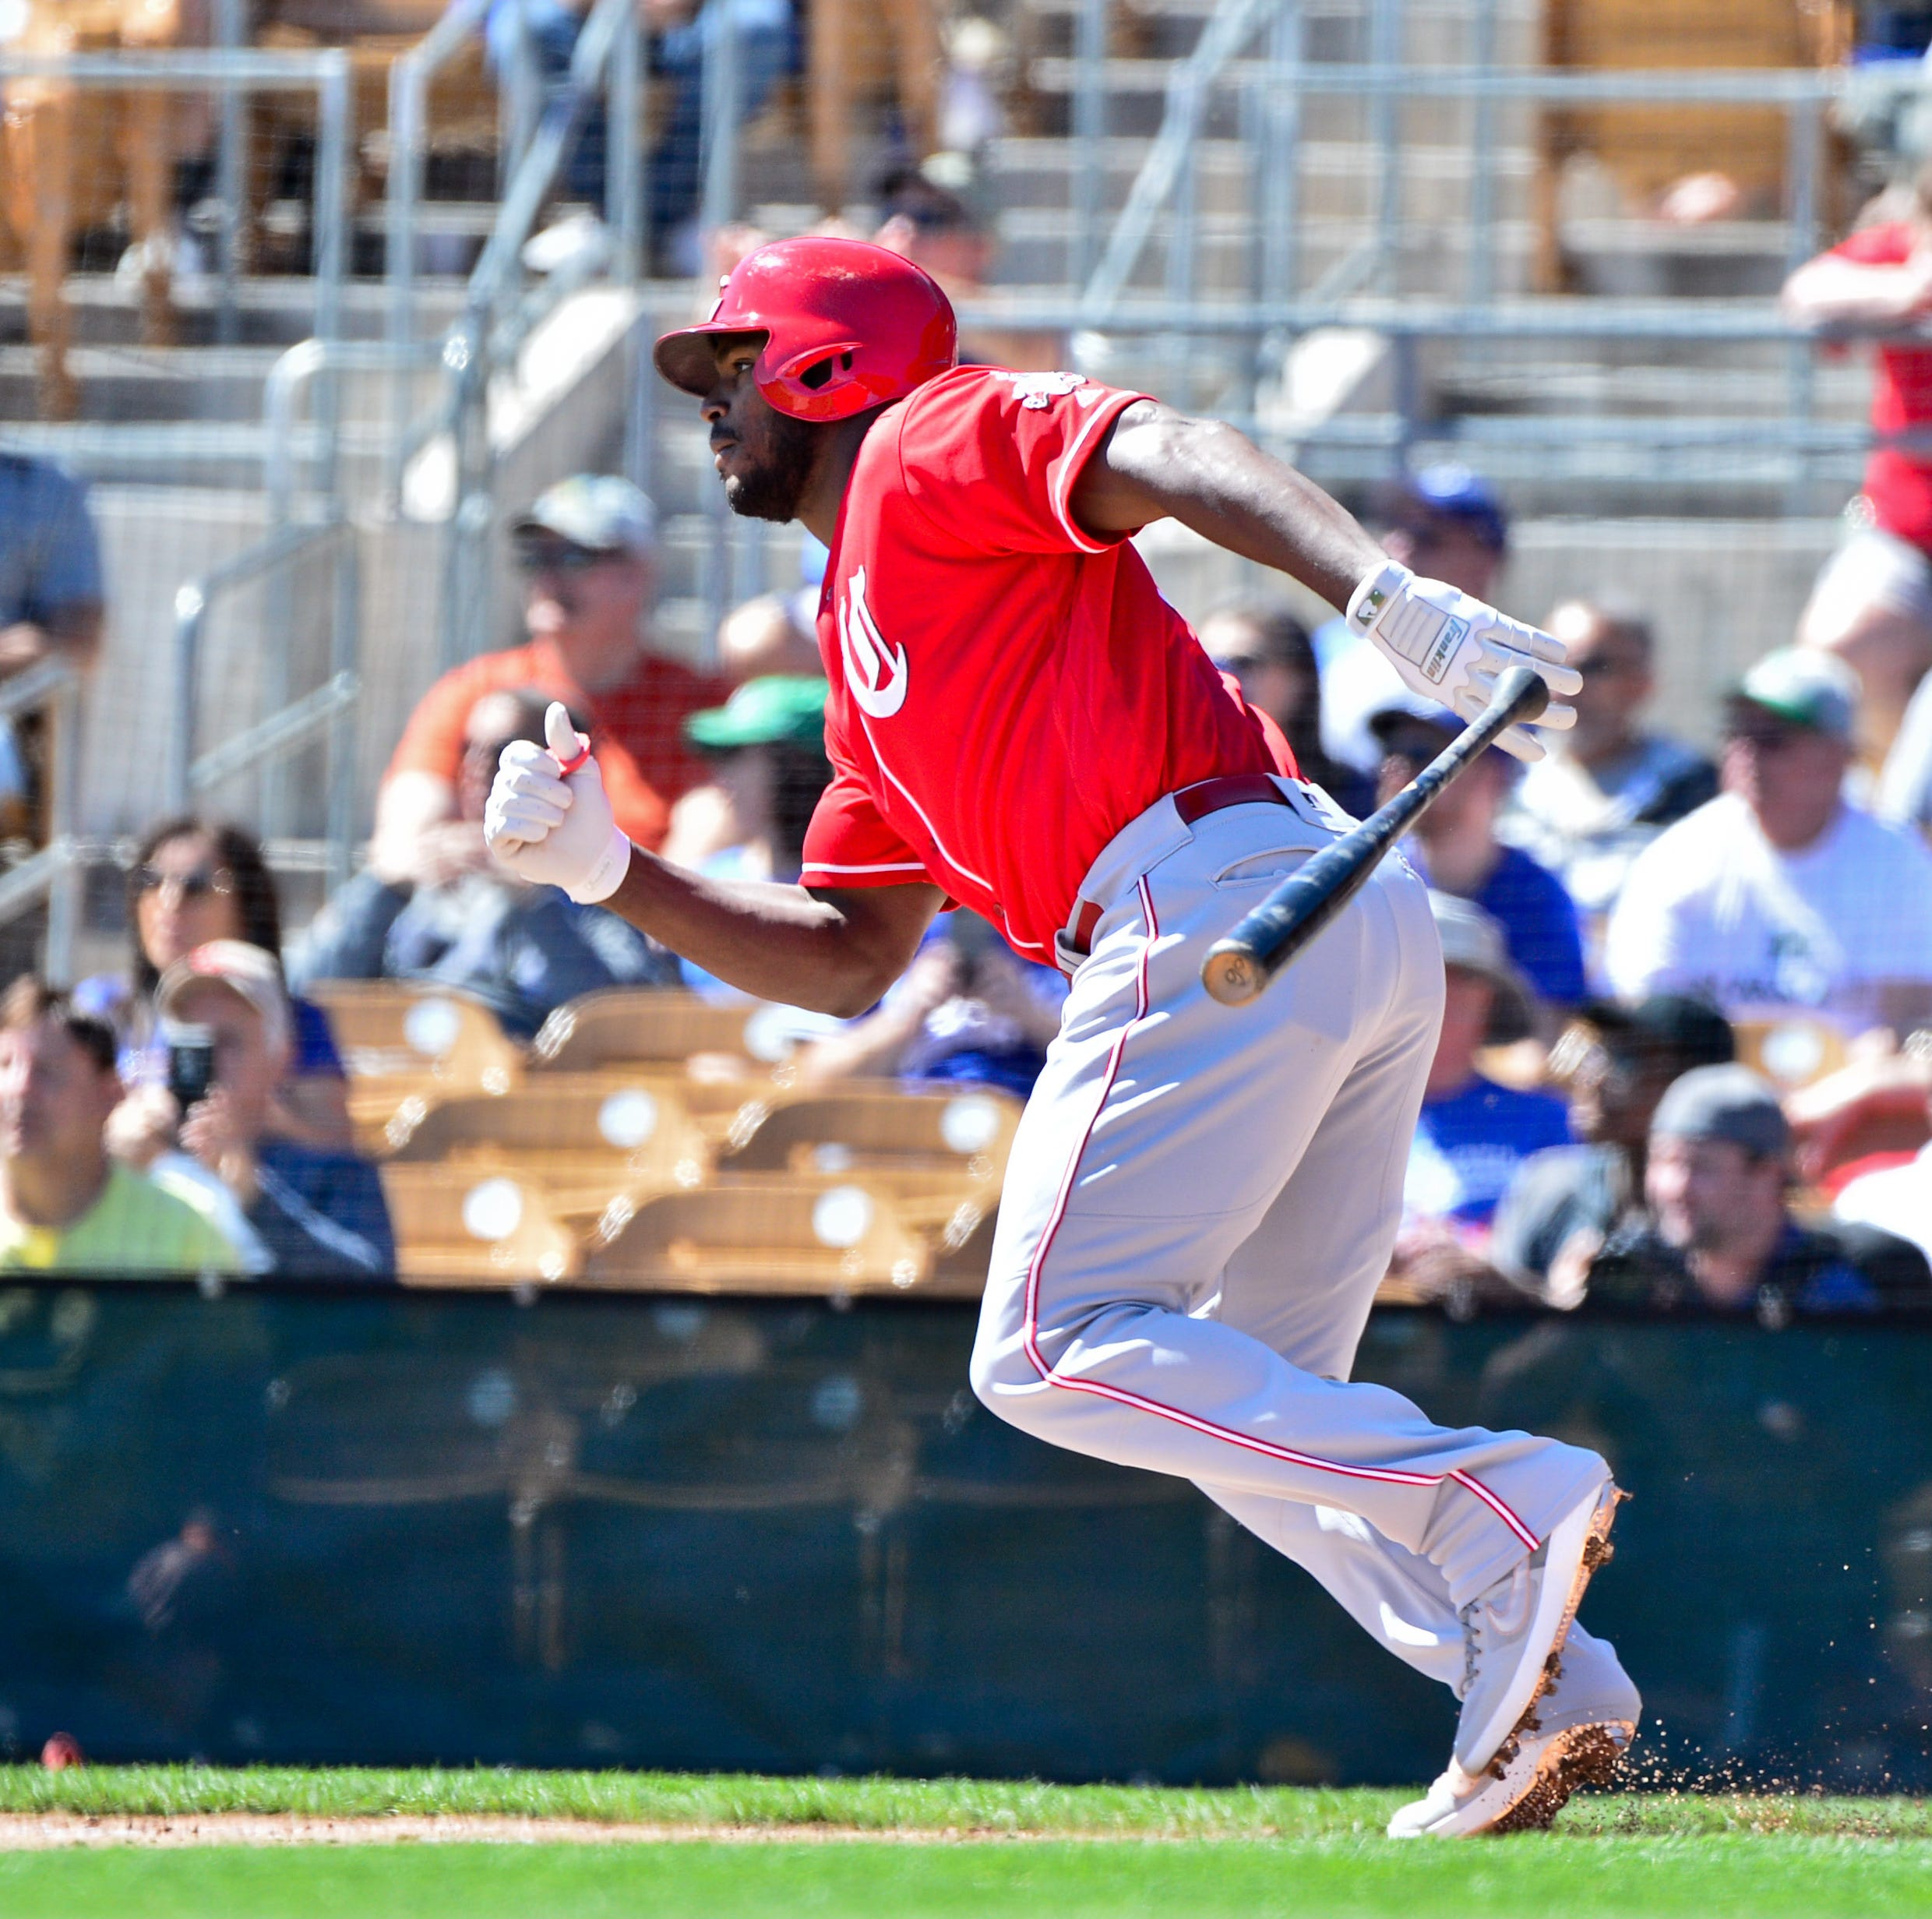 Yasiel Puig homers twice in Cincinnati Reds' 9-9 tie against Cleveland Indians